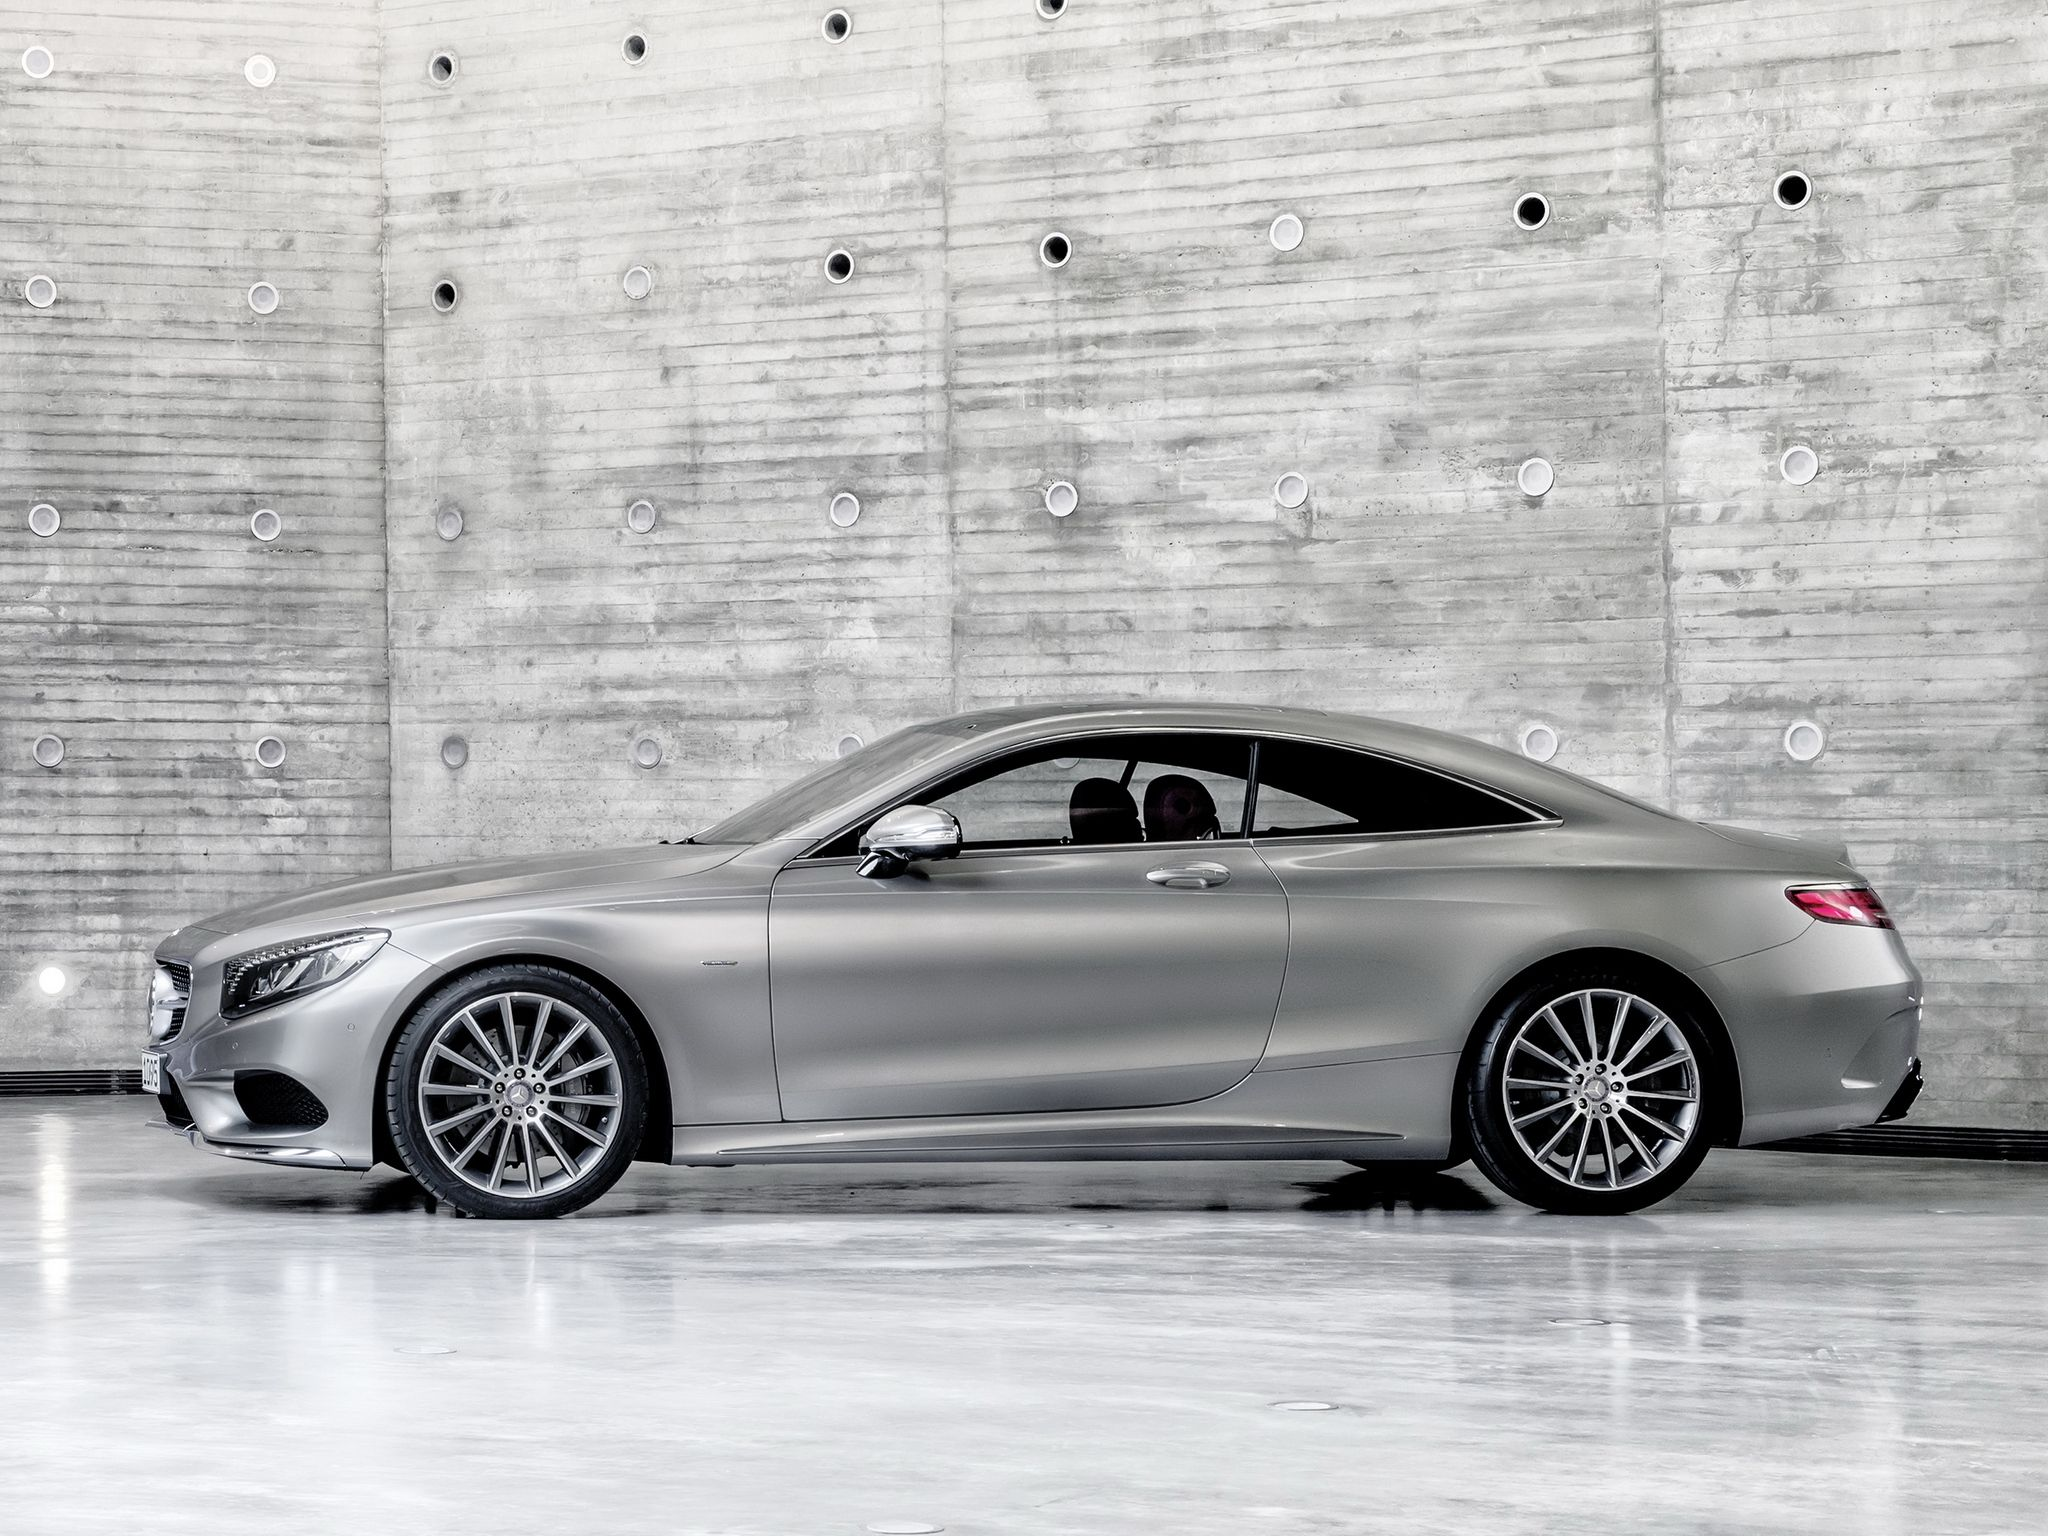 mercedes-benz c-217 coupe | automo | pinterest | mercedes benz